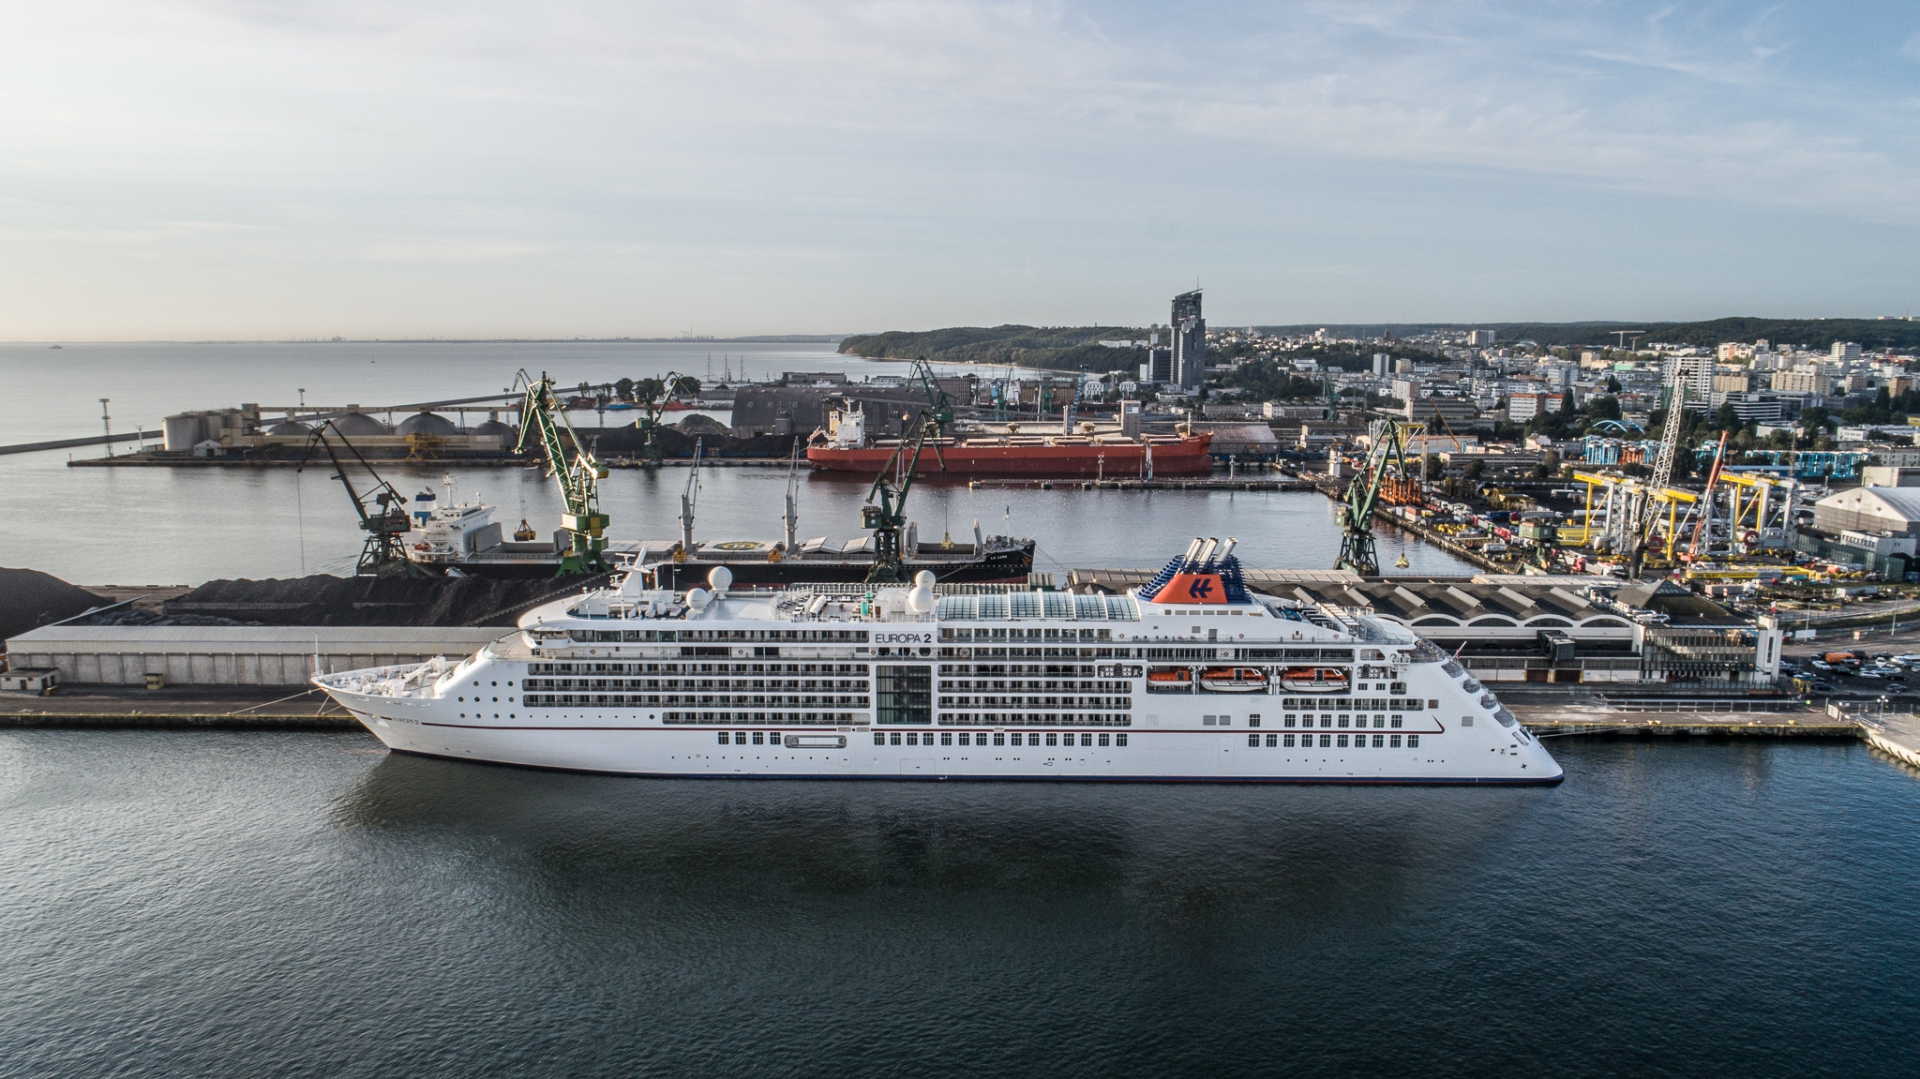 Europa 2: the first cruise ship of the season at the Port of Gdynia [photo, video]